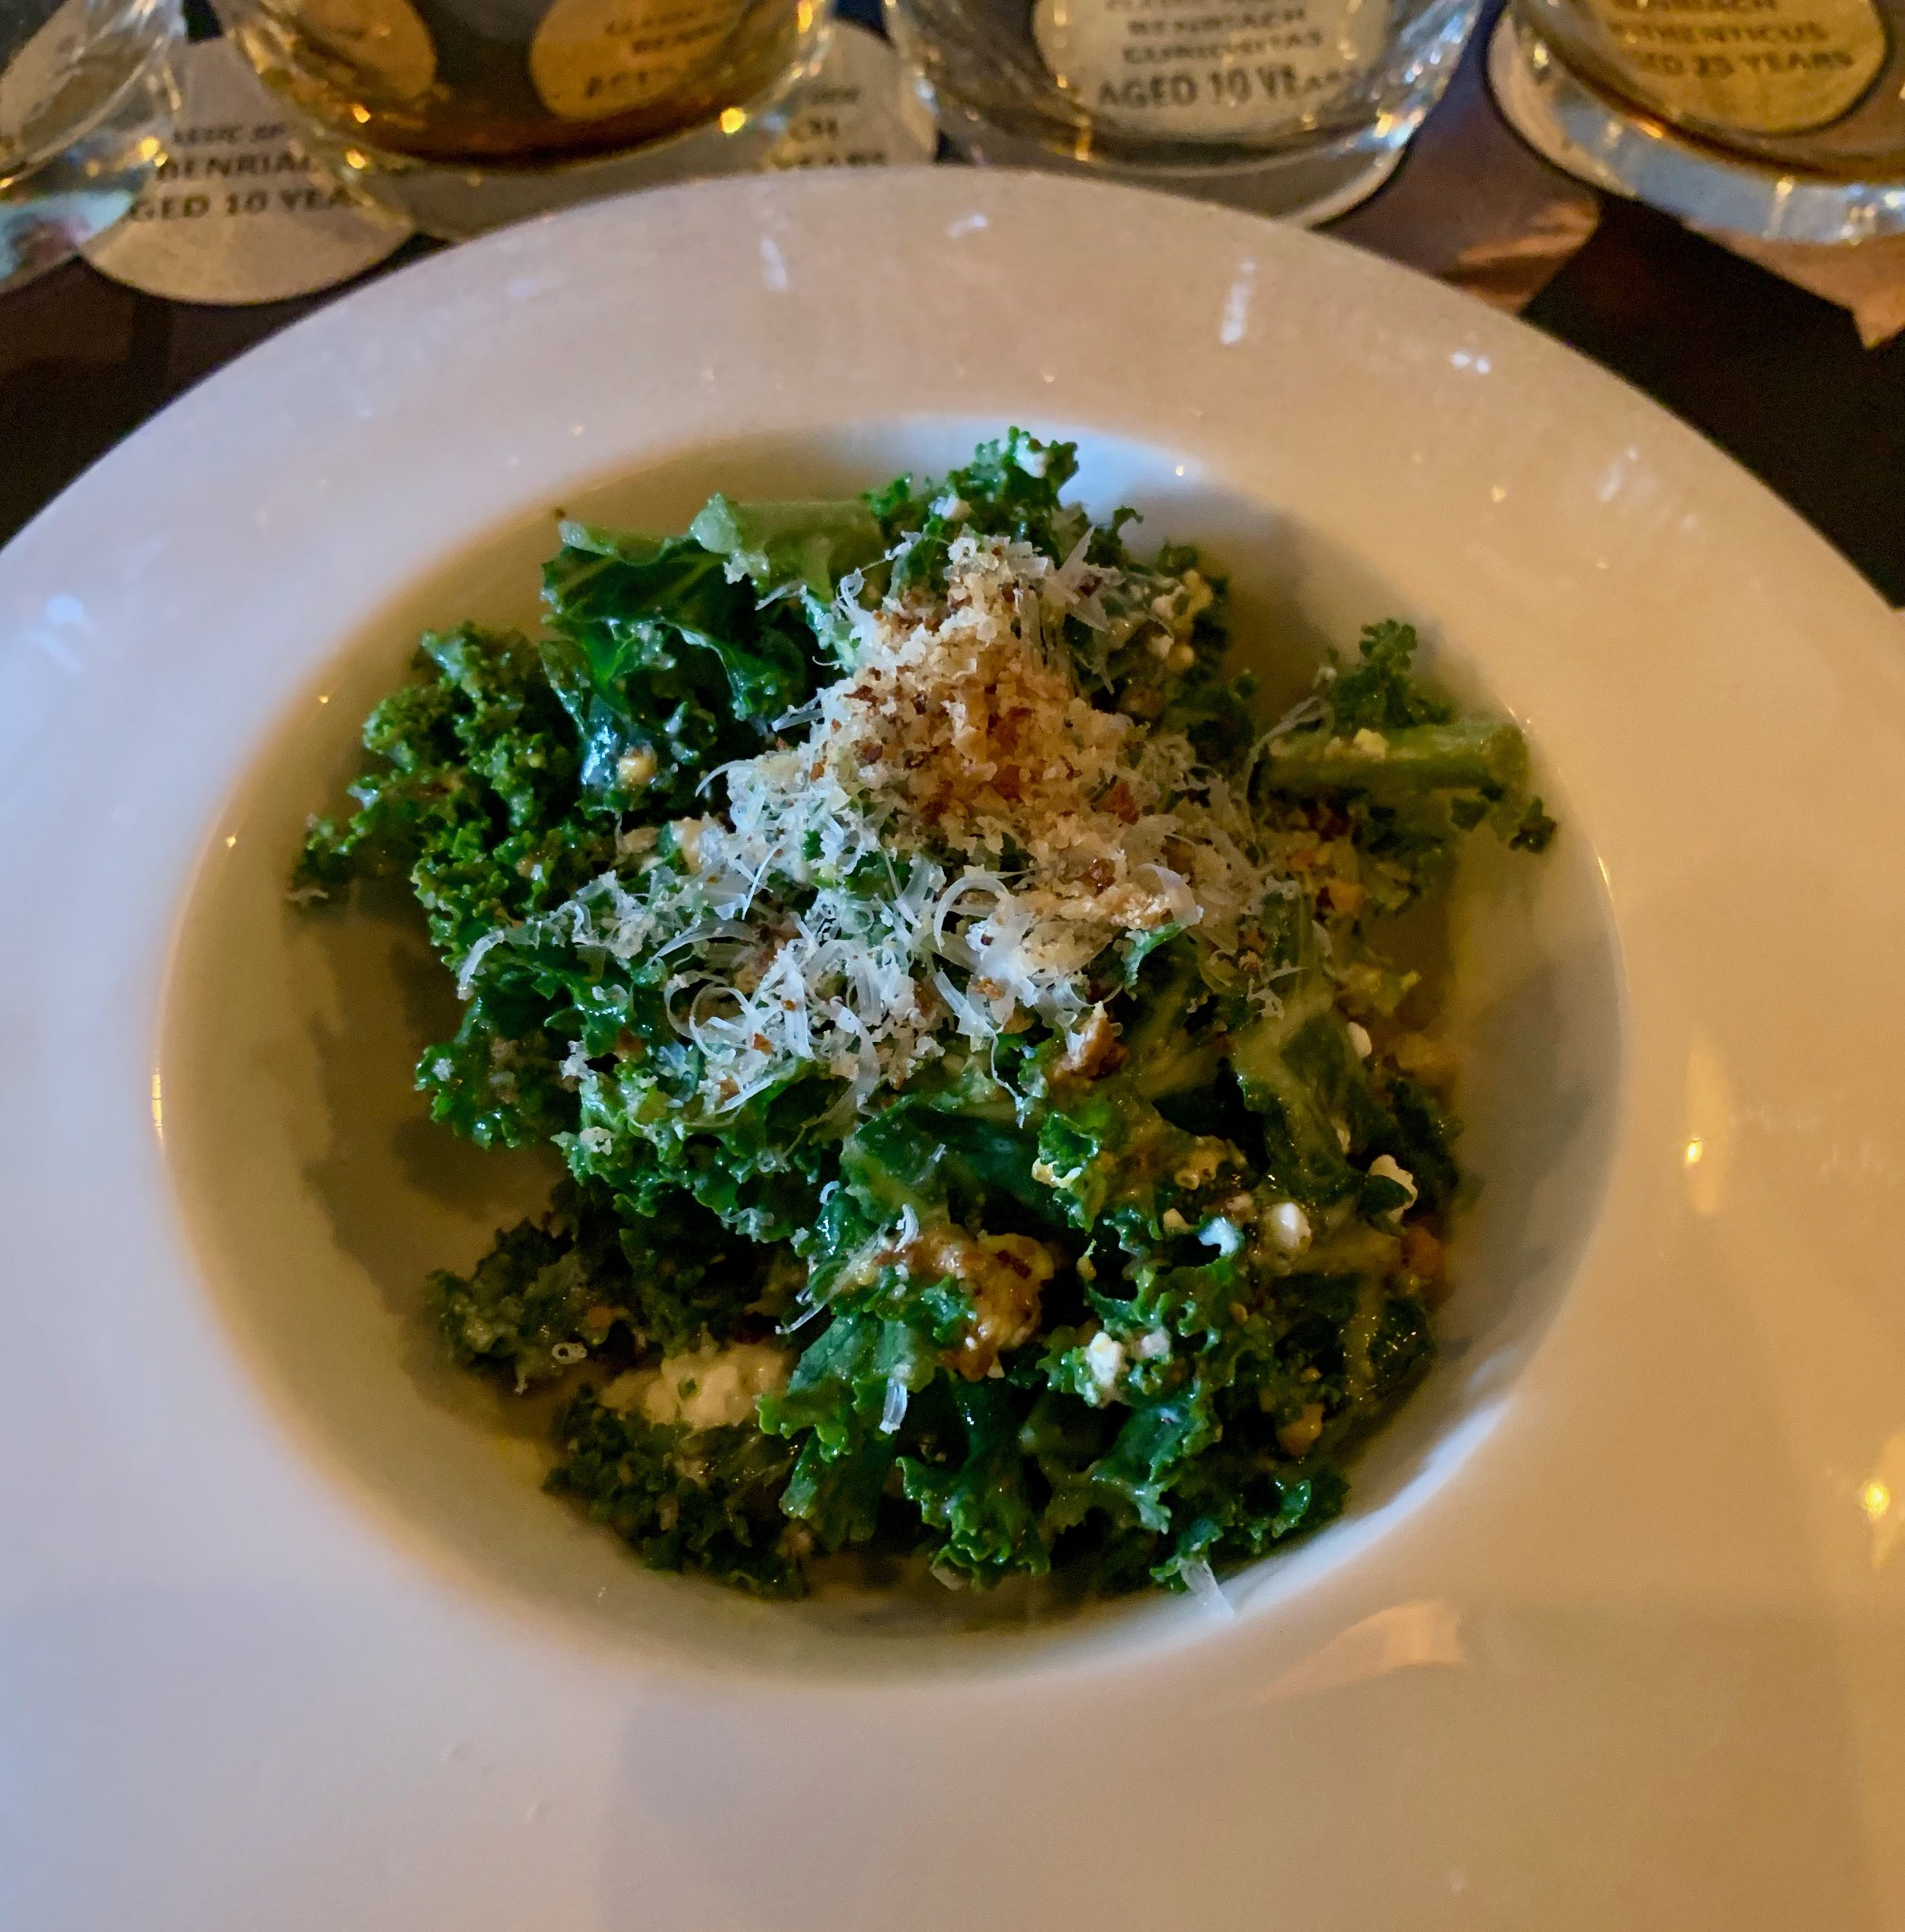 Ostra's Jay Kale salad with citrus vinaigrette and goat cheese.